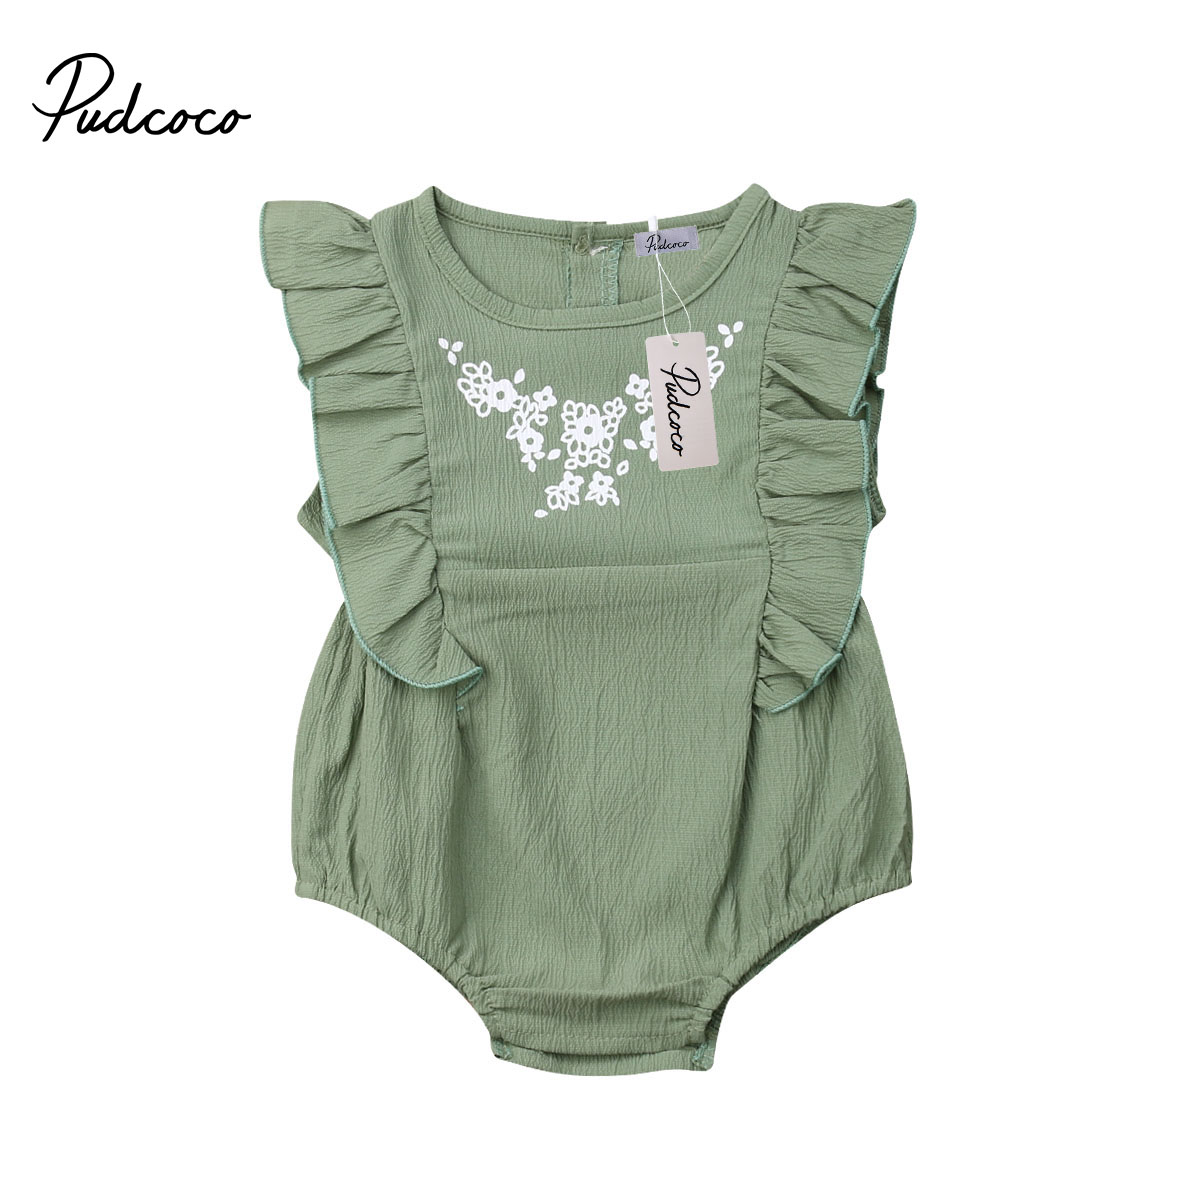 Beyonds Baby Toddler Newborn Girls Boys Rompers Solid Ruched Ruffles Strap Sleeveless Bodysuit Soft Jumpsuit Outfits Baby Onesies Playsuit Pants Clothes Summer